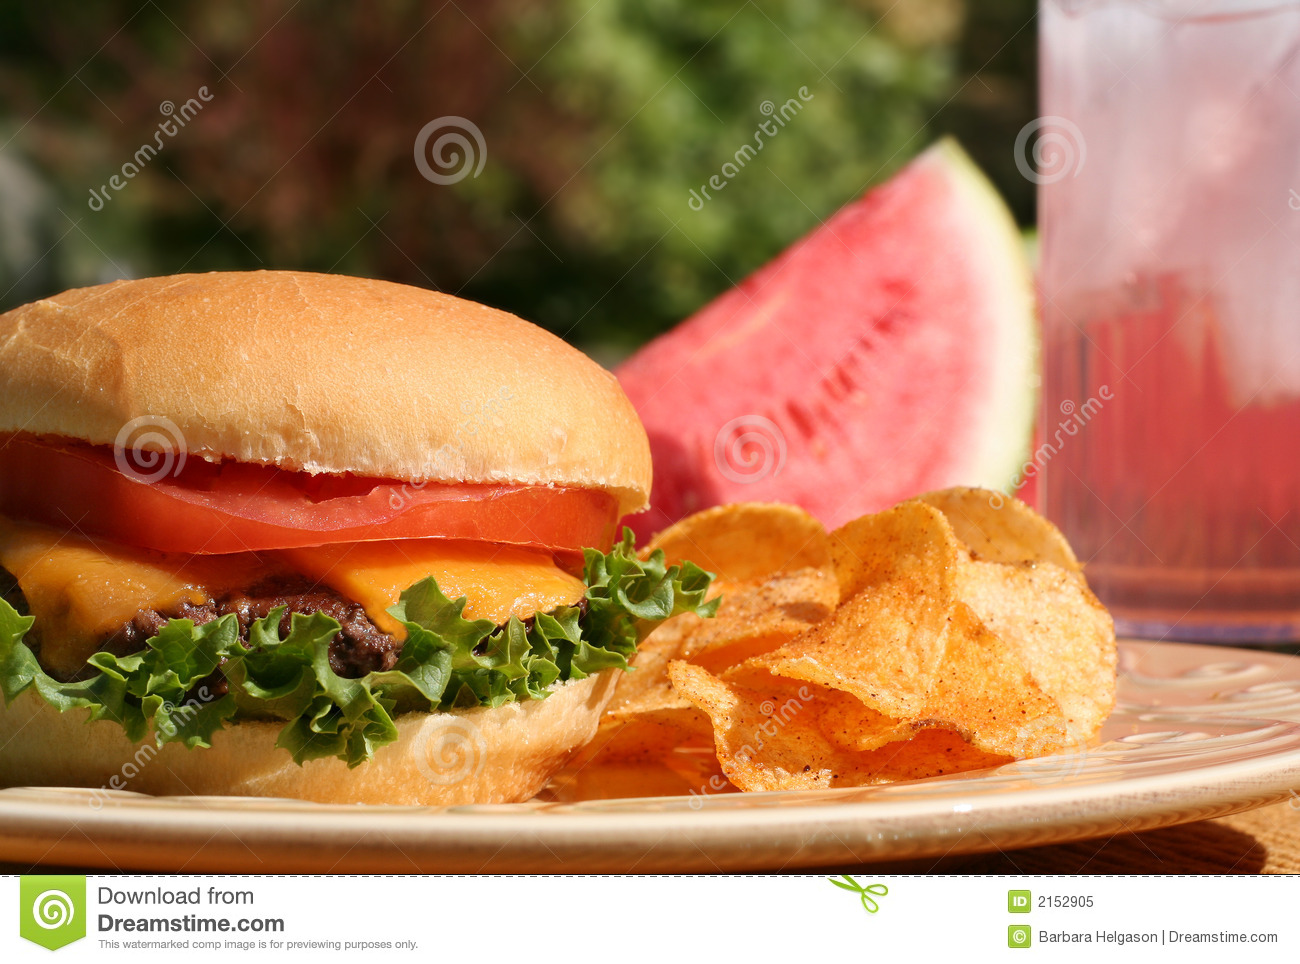 Perfect cheeseburger outside, with chips, watermelon and lemonade.